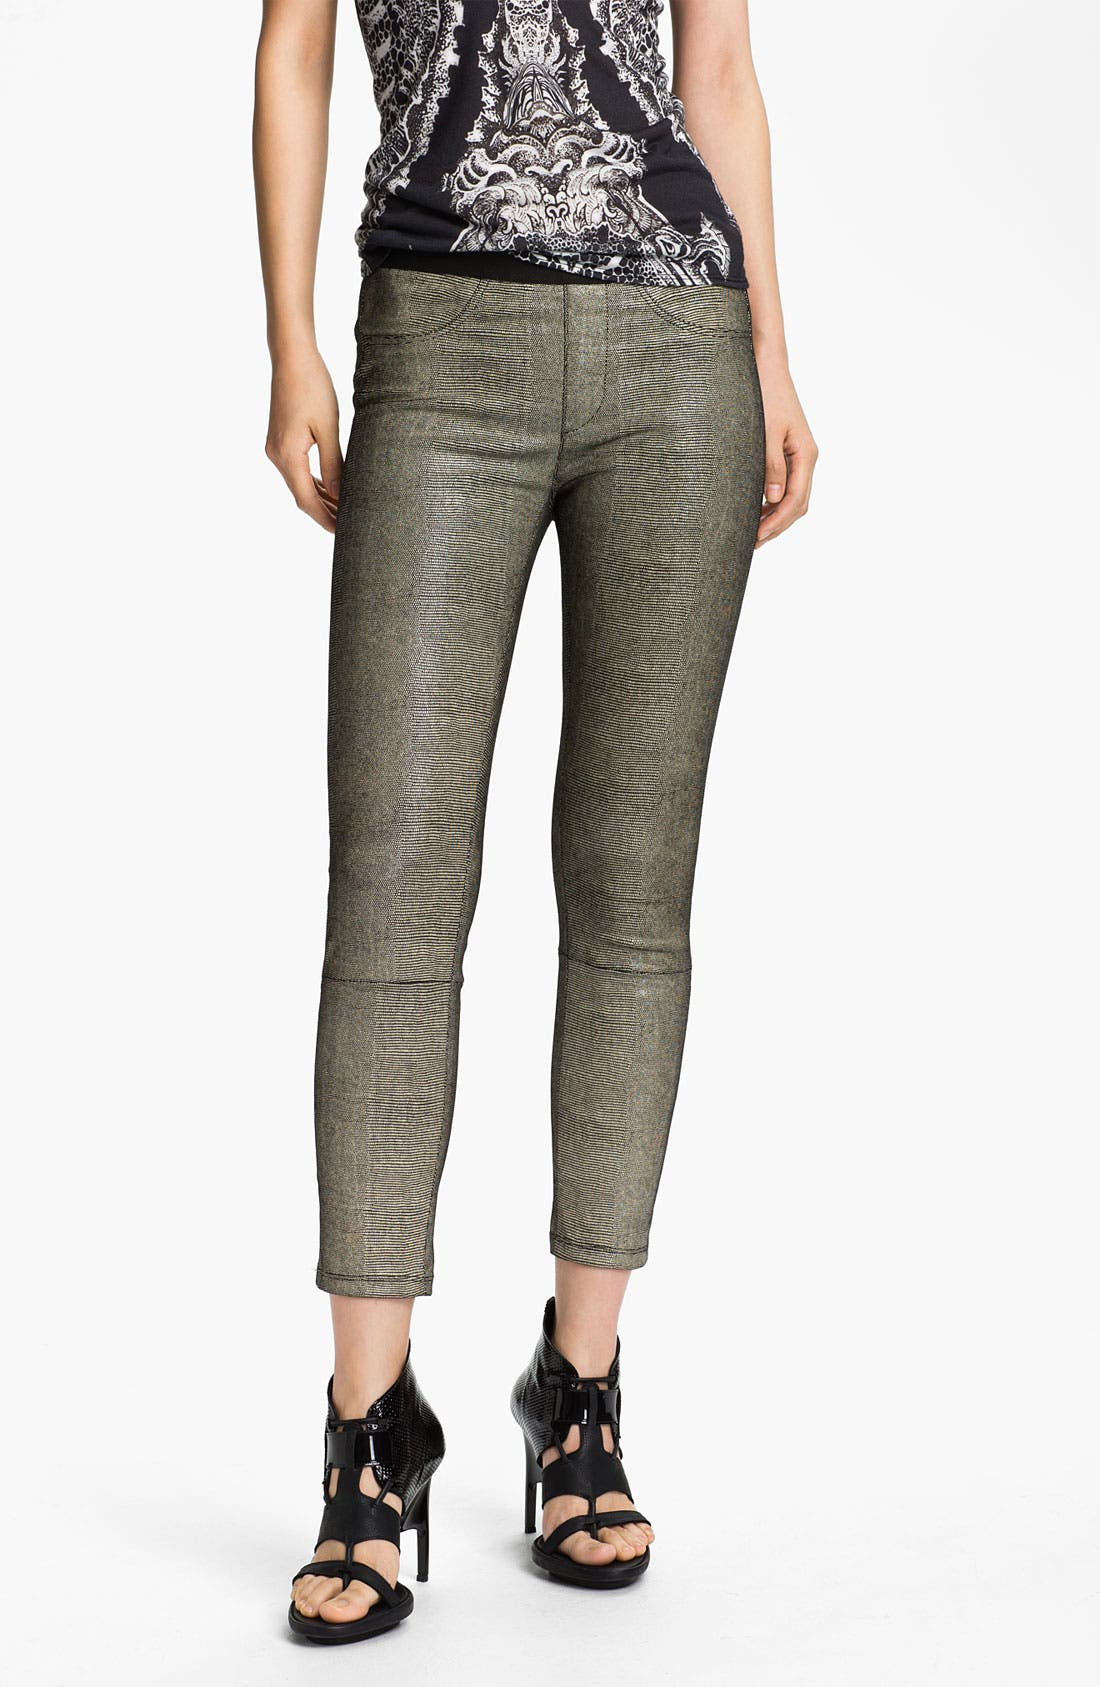 Alternate Image 1 Selected - Helmut Lang 'Rift' Stretch Leather Crop Leggings